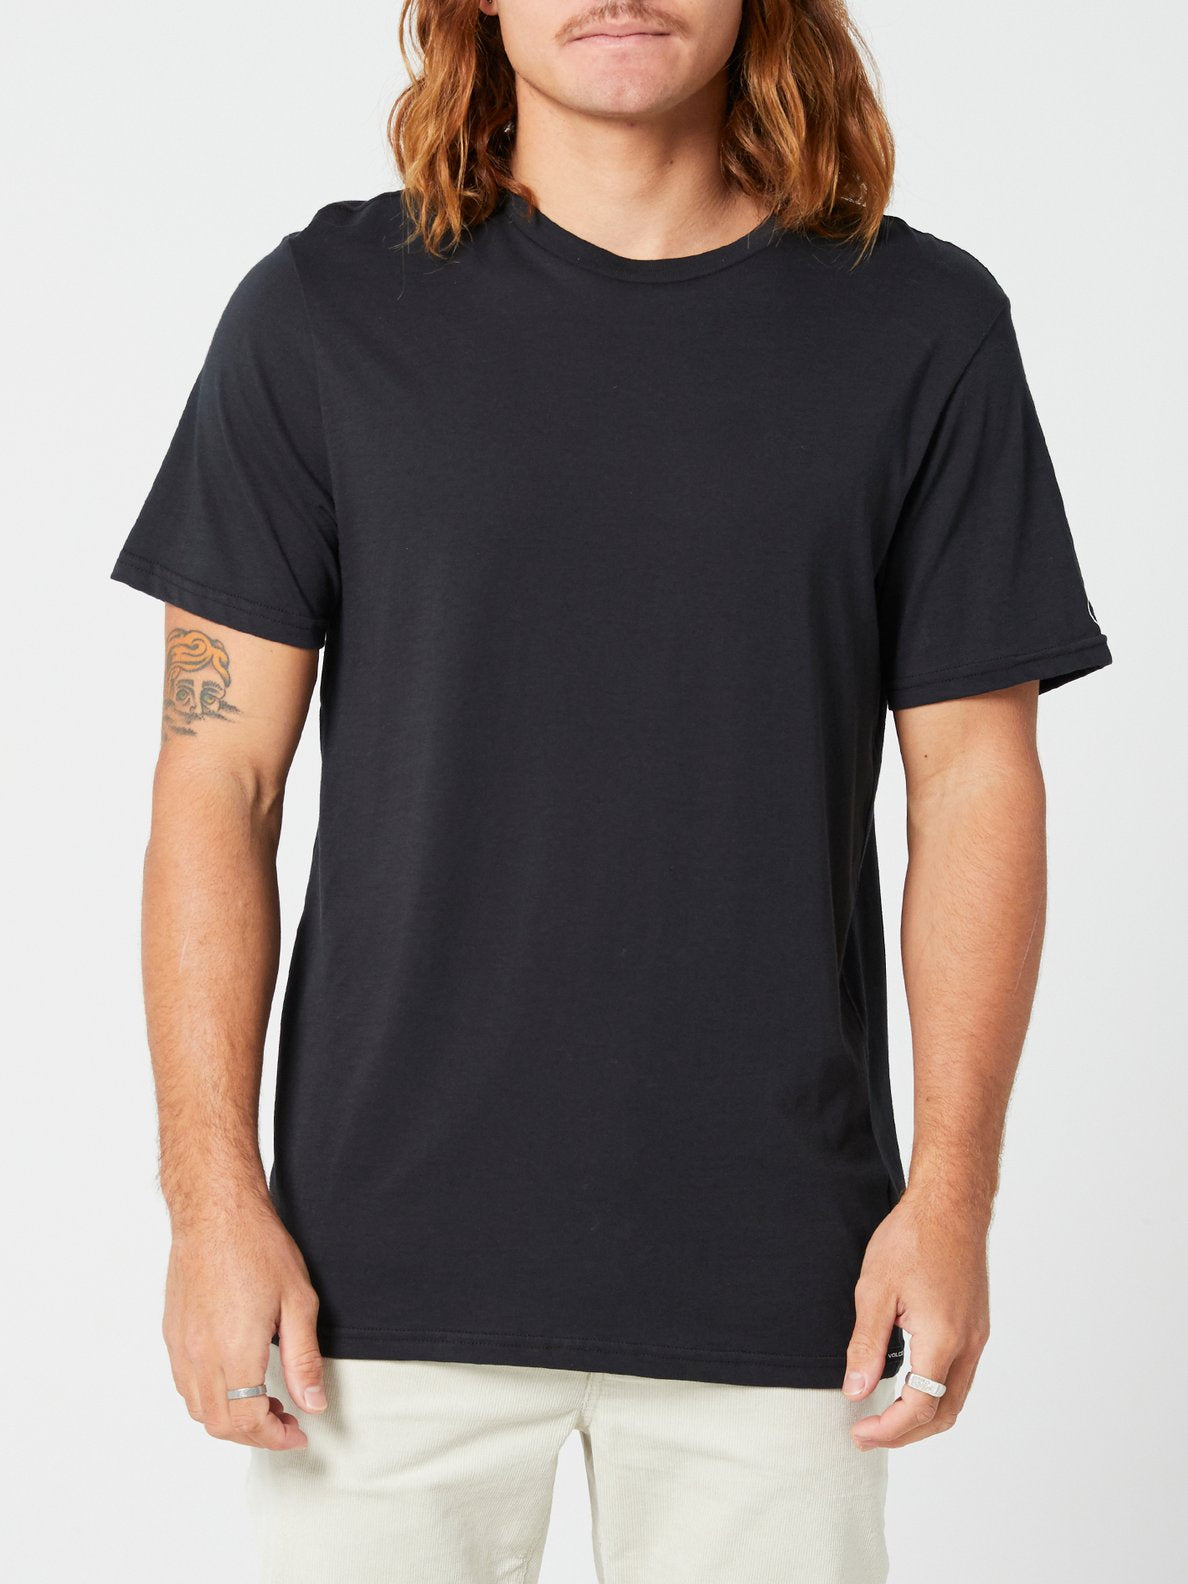 Solid Short Sleeve Tee